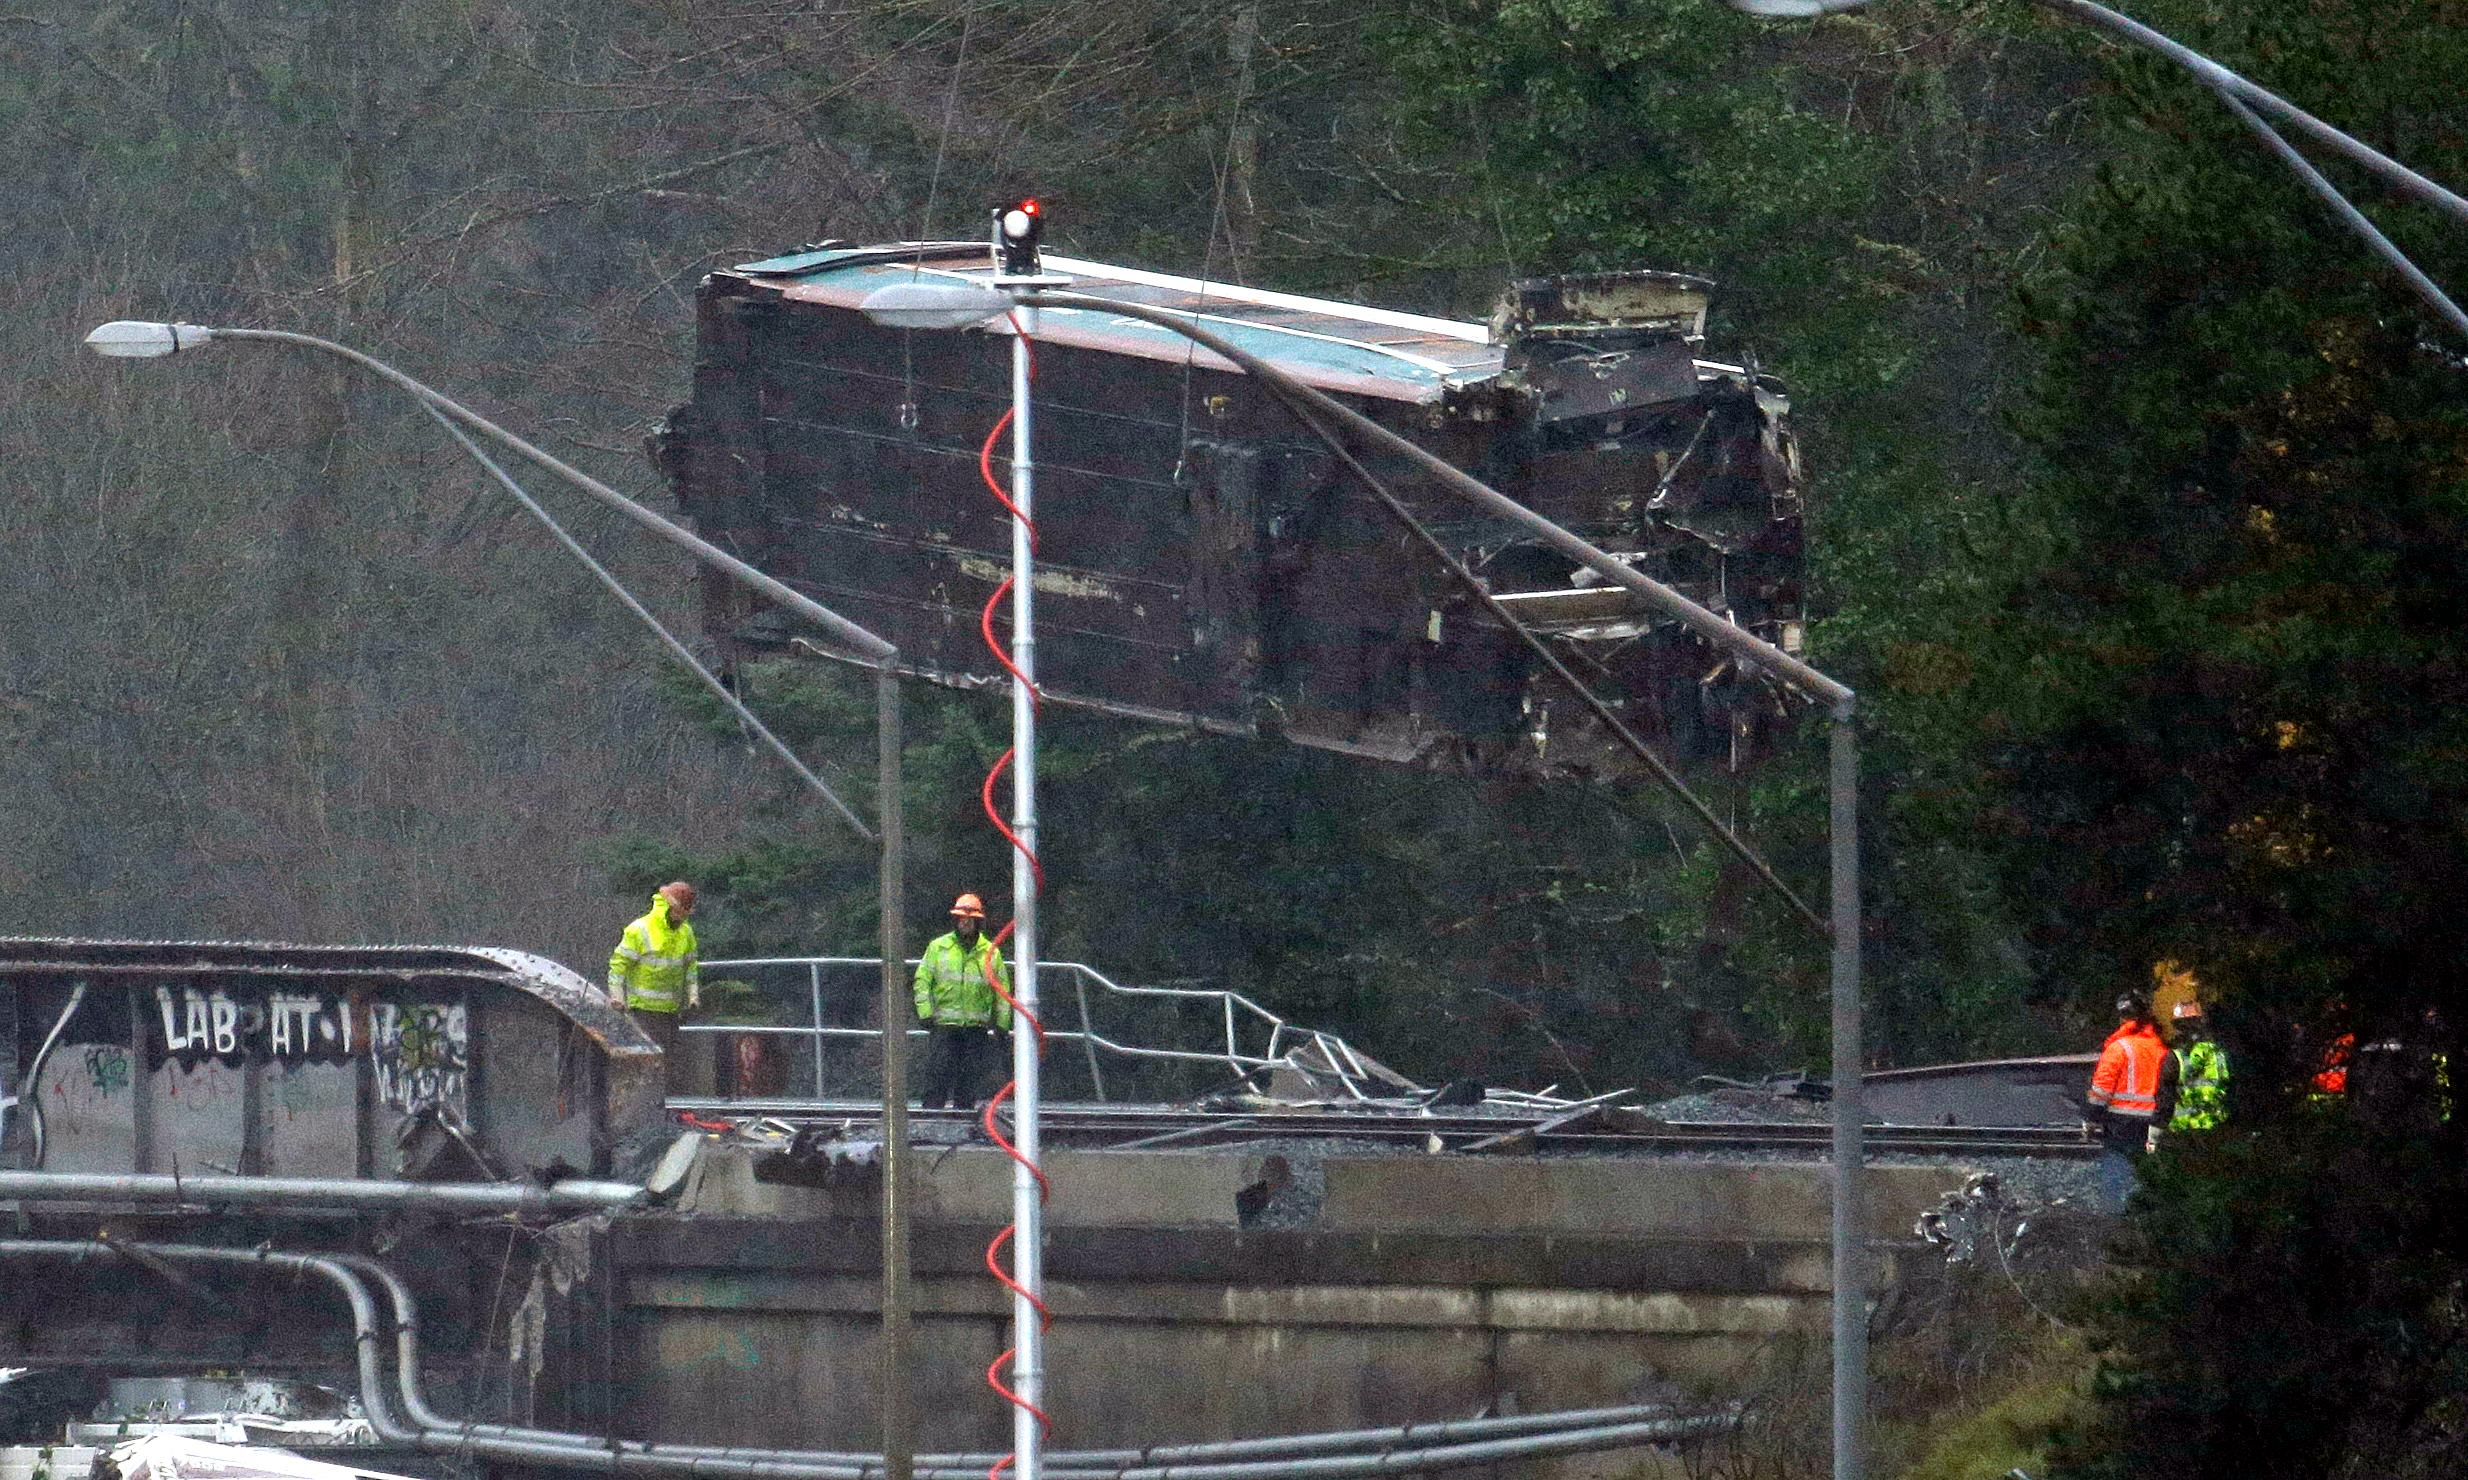 A damaged Amtrak train car is lowered from an overpass at the scene of a train crash onto Interstate 5 a day earlier, Tuesday, Dec. 19, 2017, in DuPont, Wash. Federal investigators say they don't yet know why the Amtrak train was traveling 50 mph over the speed limit when it derailed Monday south of Seattle.  (AP Photo/Elaine Thompson)